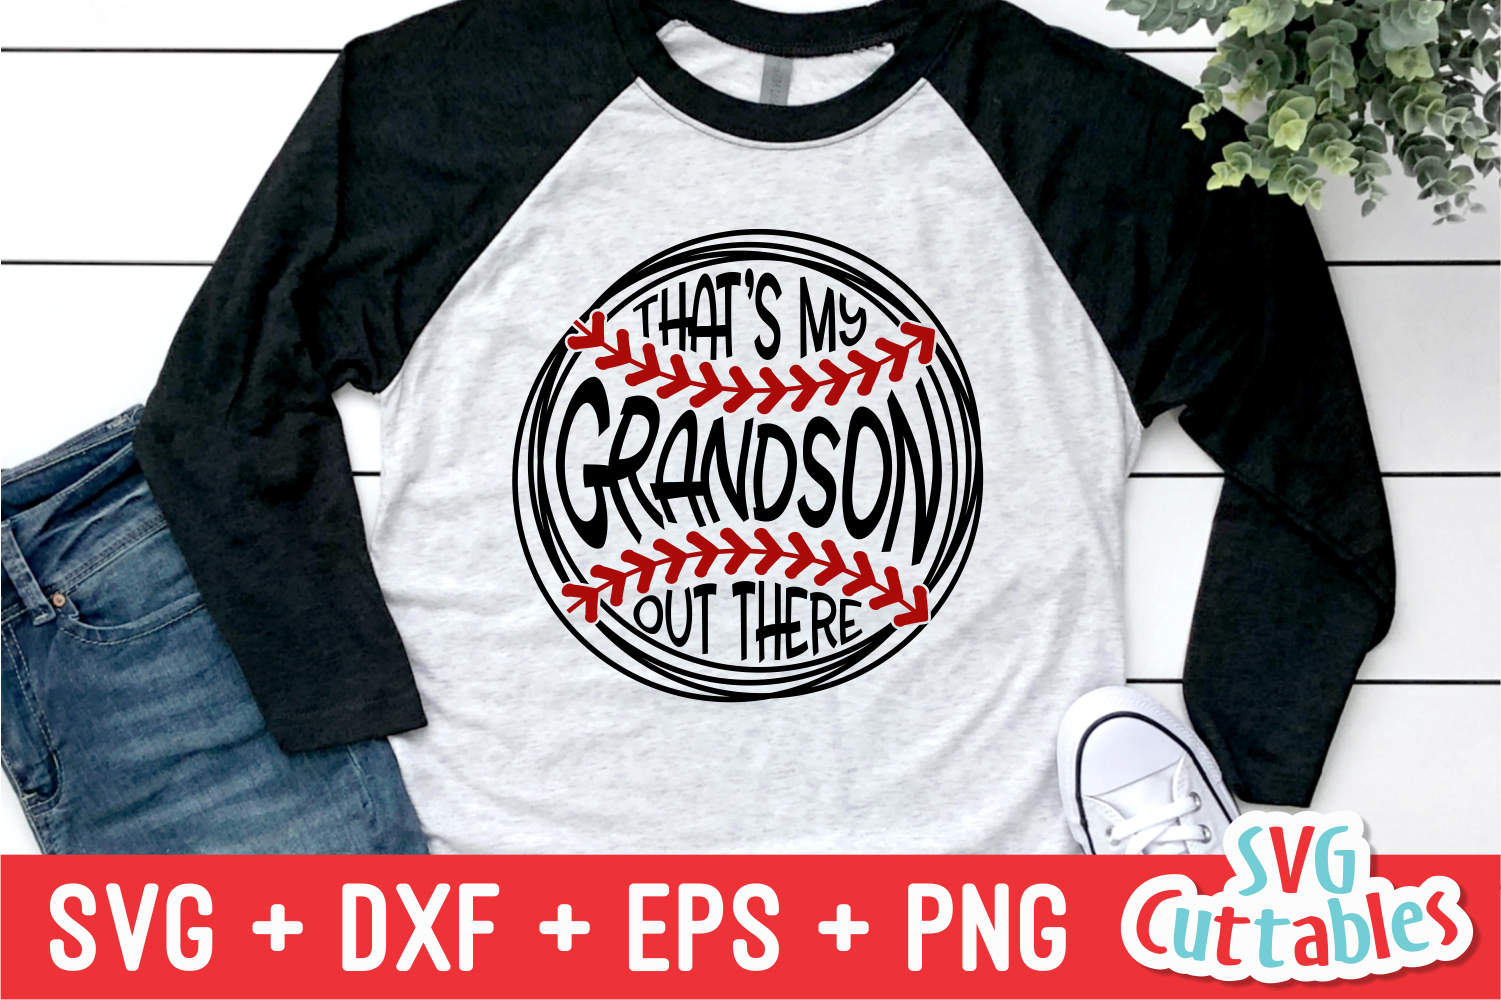 That's My Grandson Out There | Baseball | SVG Cut File example image 1